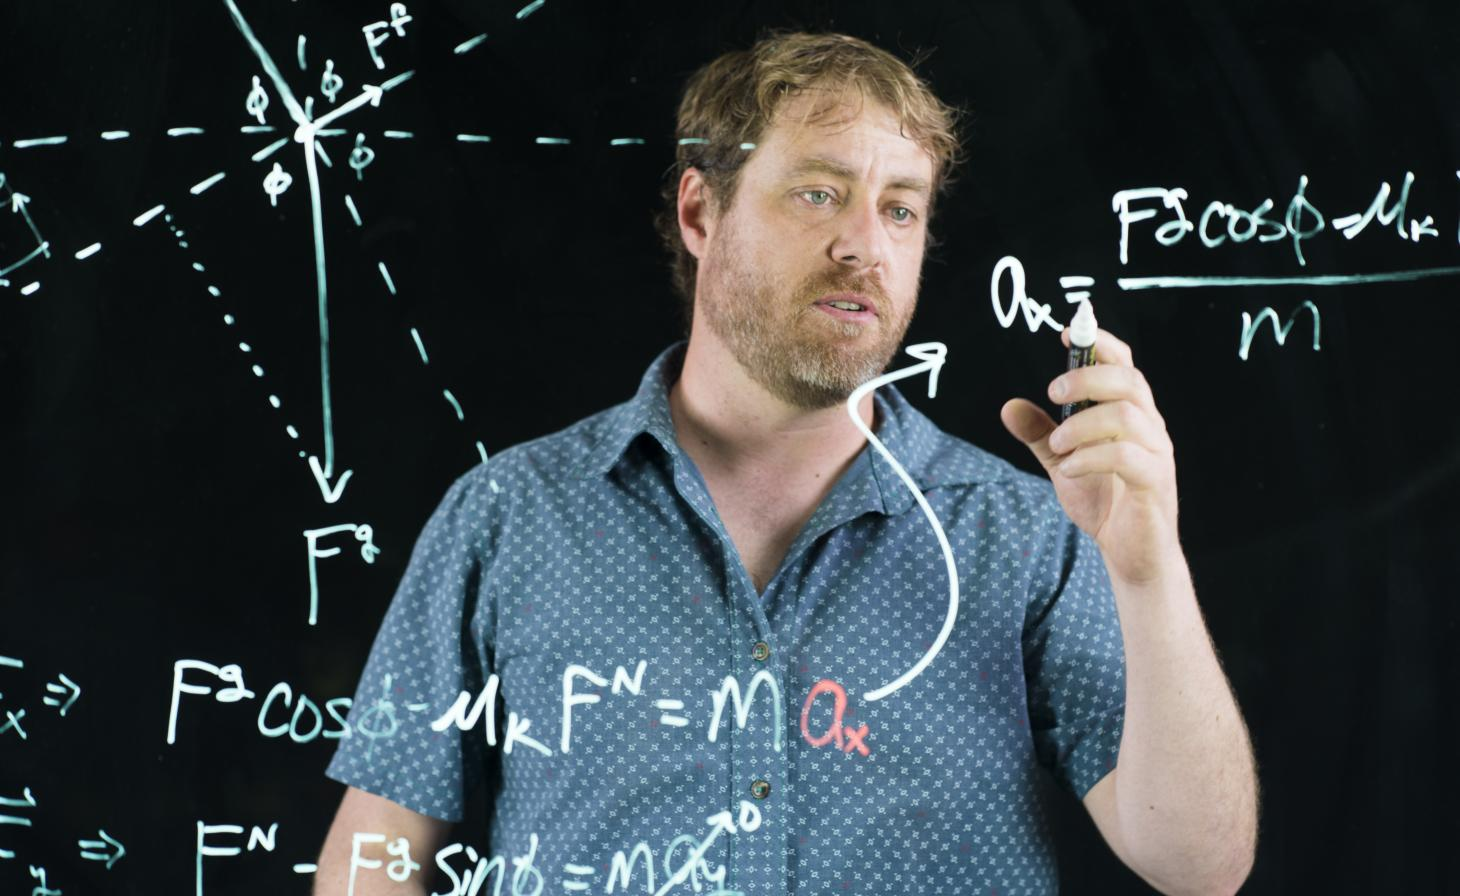 KC Walsh writing equation on translucent board in front of black backdrop